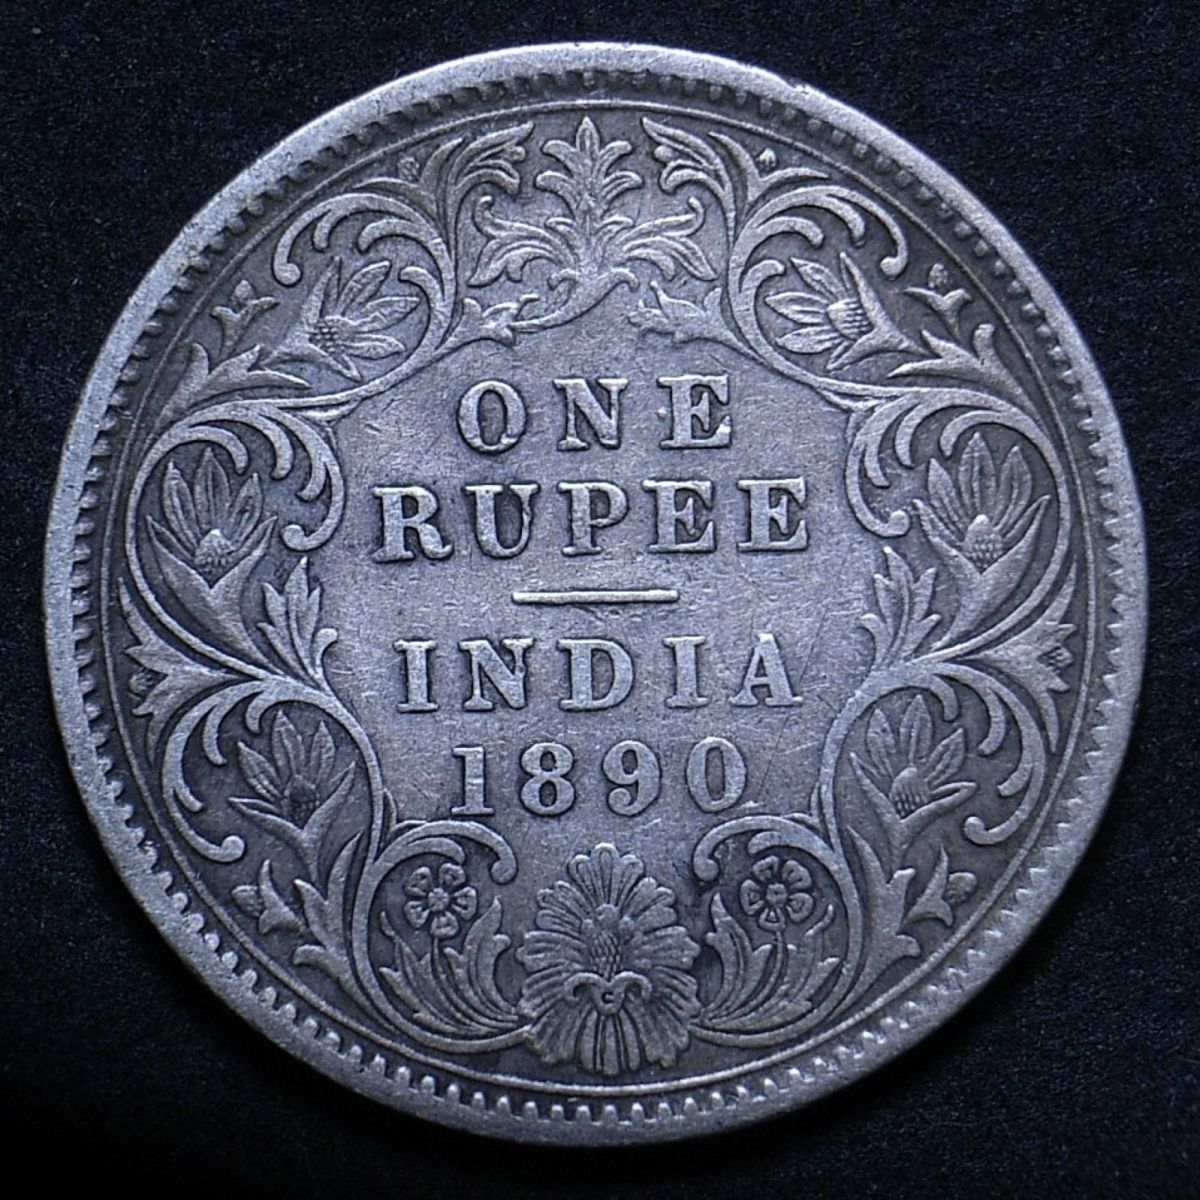 Close up of Indian 1890C rupee reverse showing the coin's detail